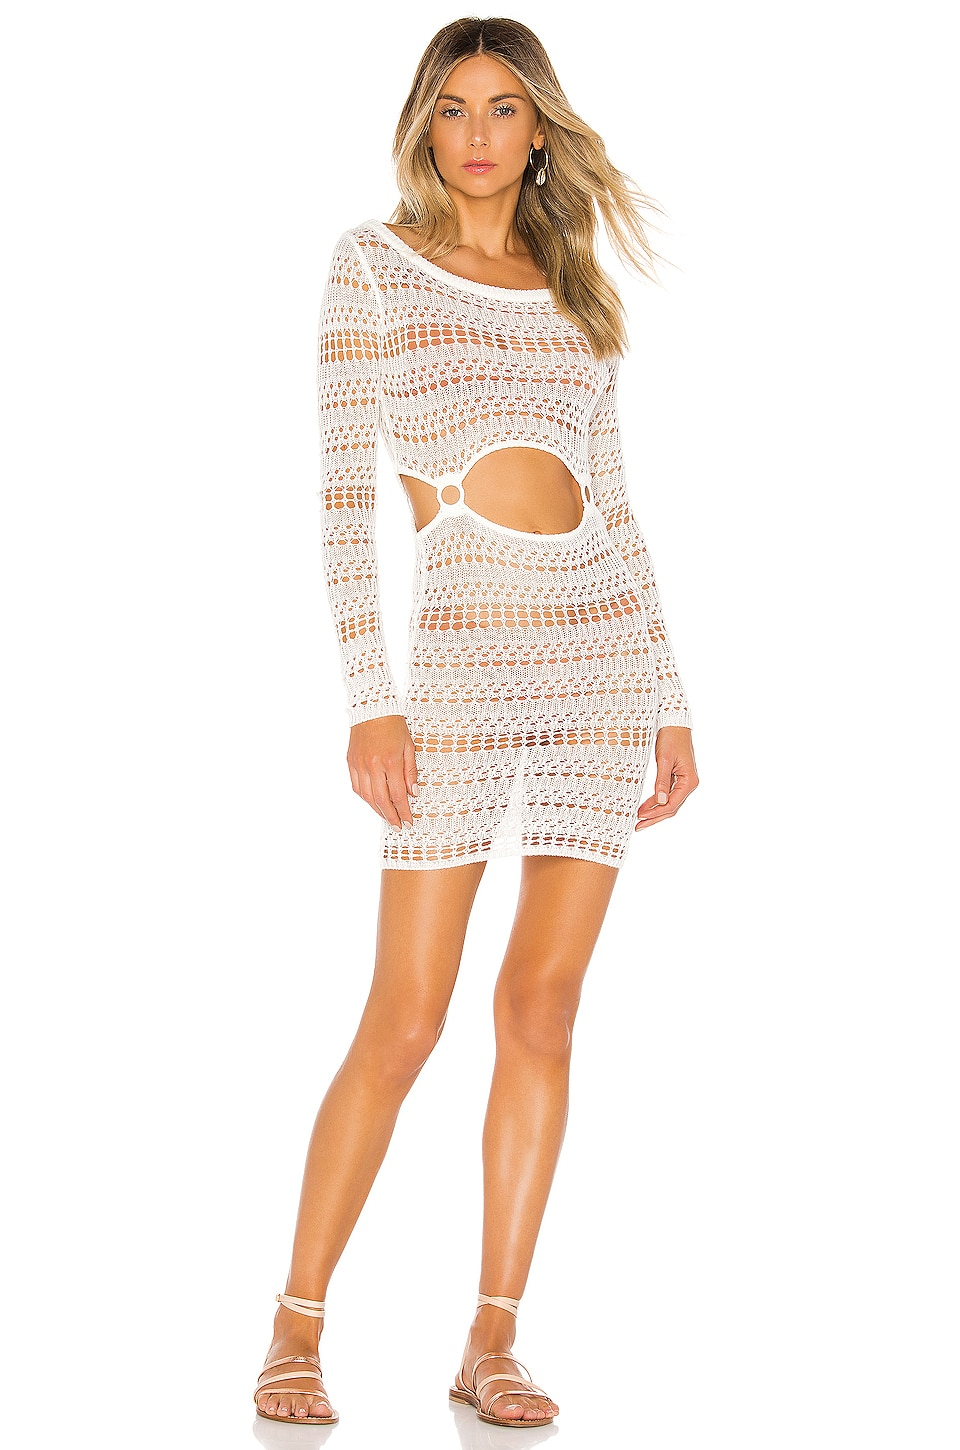 House of Harlow 1960 x REVOLVE Ace Cut Out Dress in White